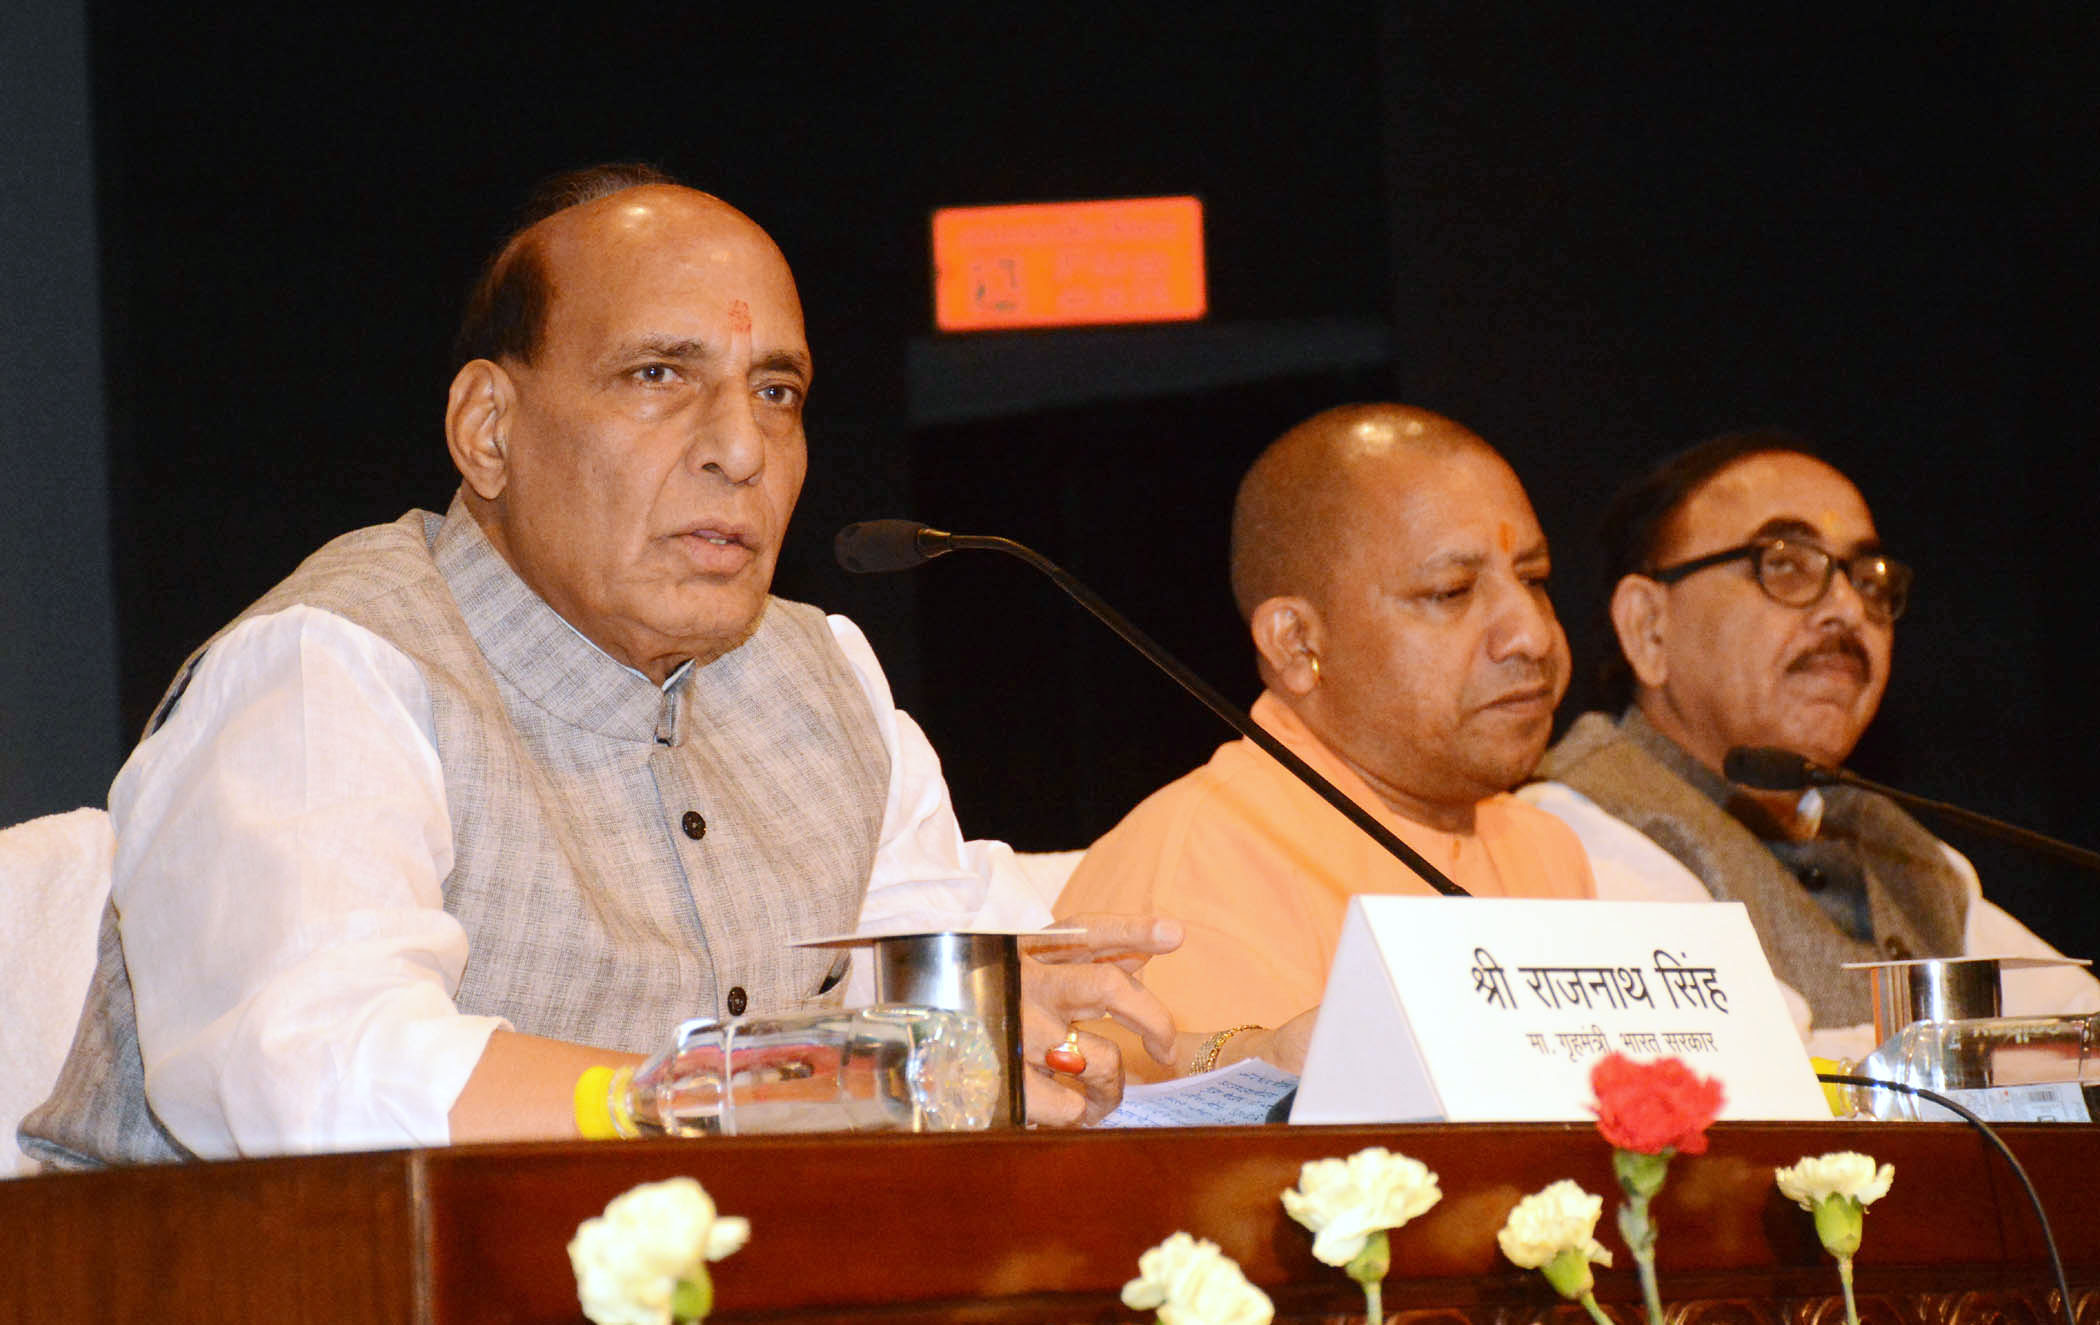 The Union Home Minister, Shri Rajnath Singh addressing a press conference, in Lucknow, Uttar Pradesh on May 29, 2018.  The Chief Minister of Uttar Pradesh, Yogi Adityanath and is also seen.